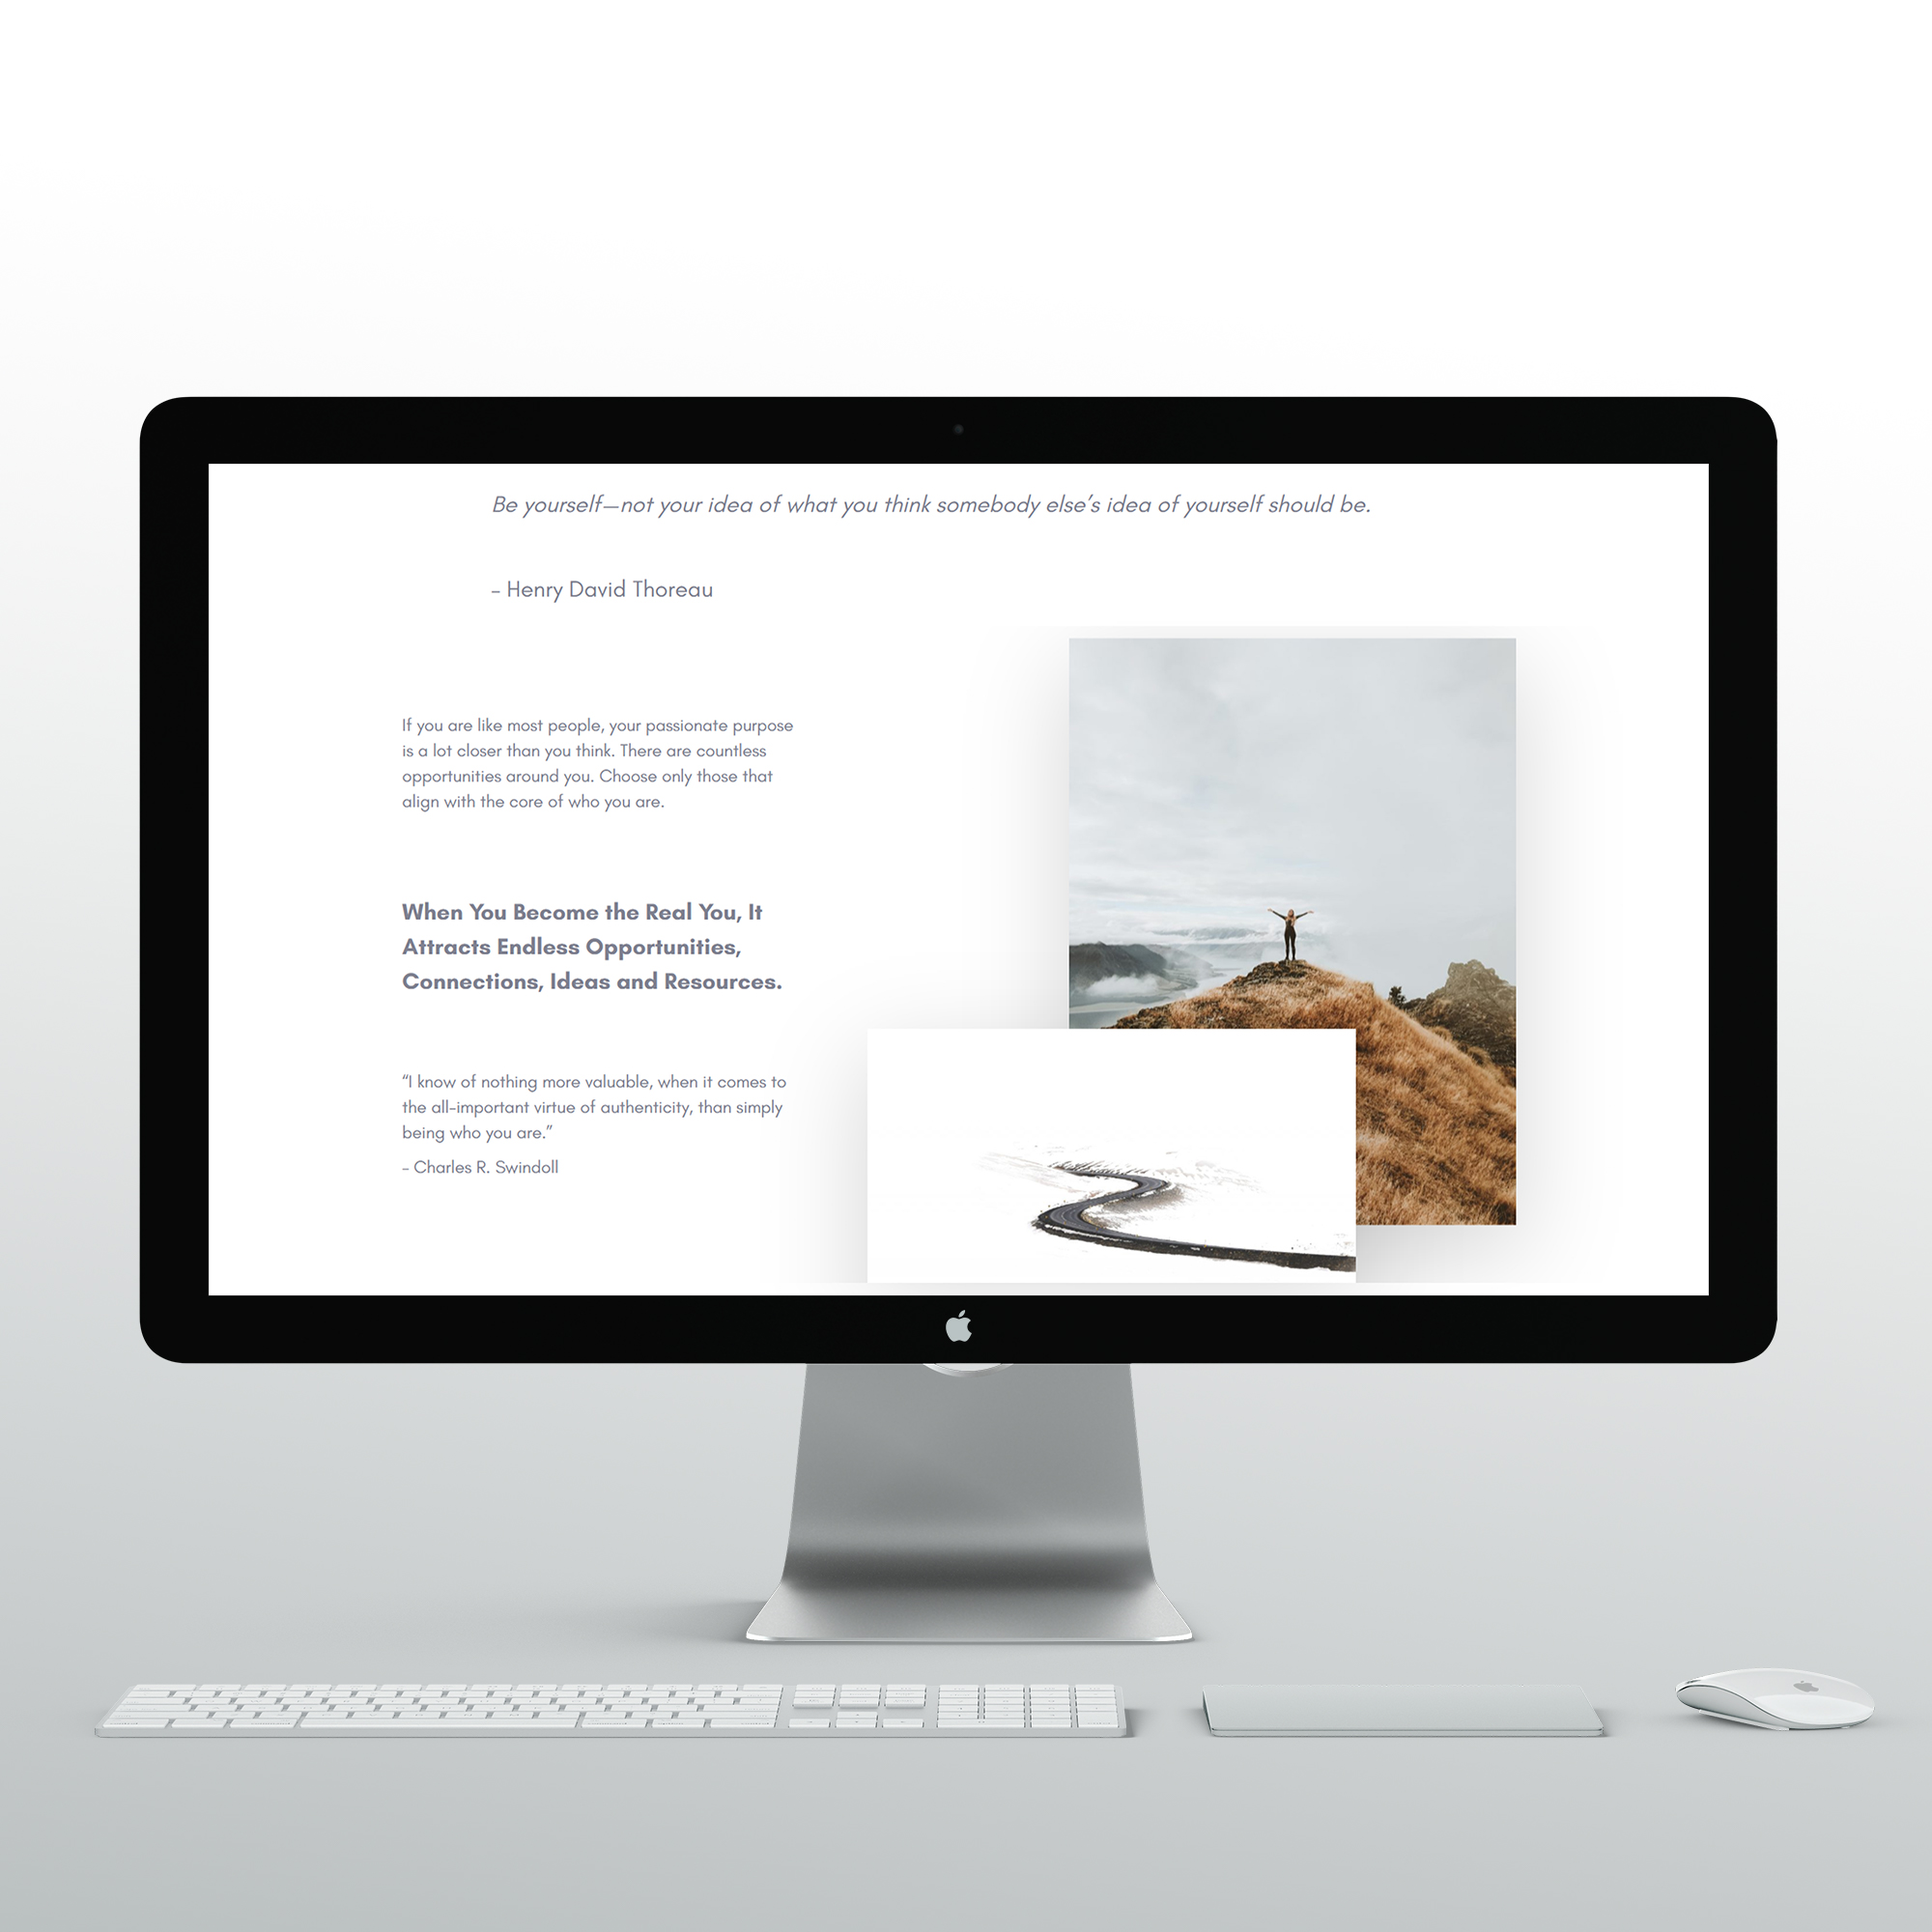 An iMac with part of Dare to Change website